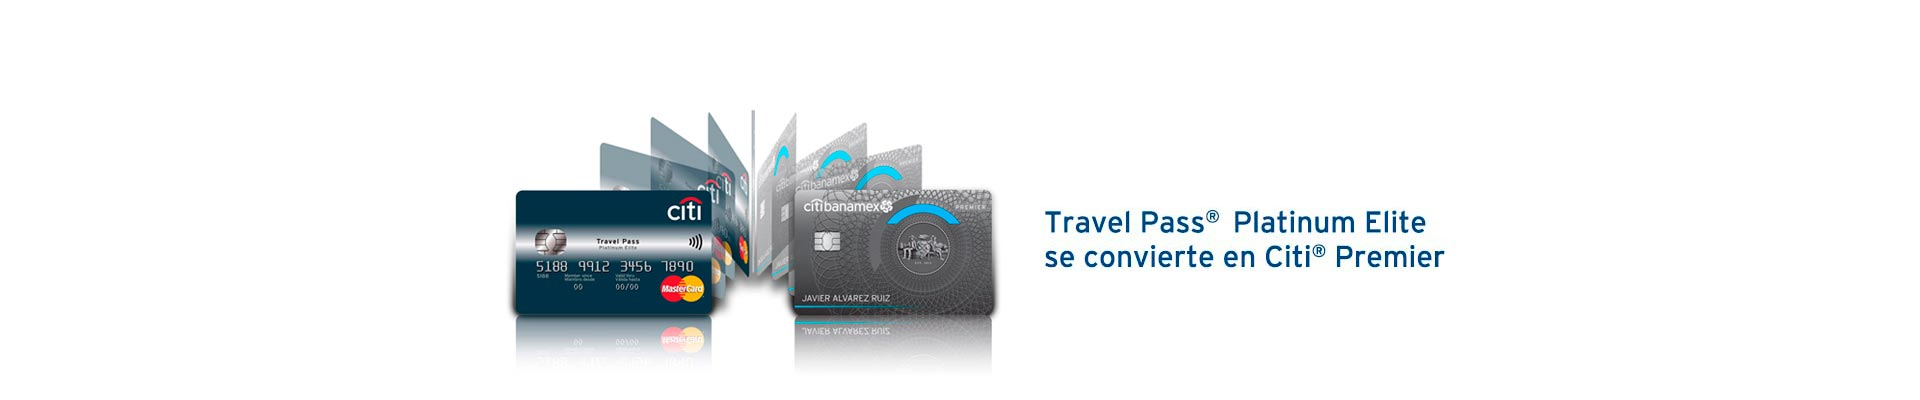 Tarjeta Travel Pass Elite level